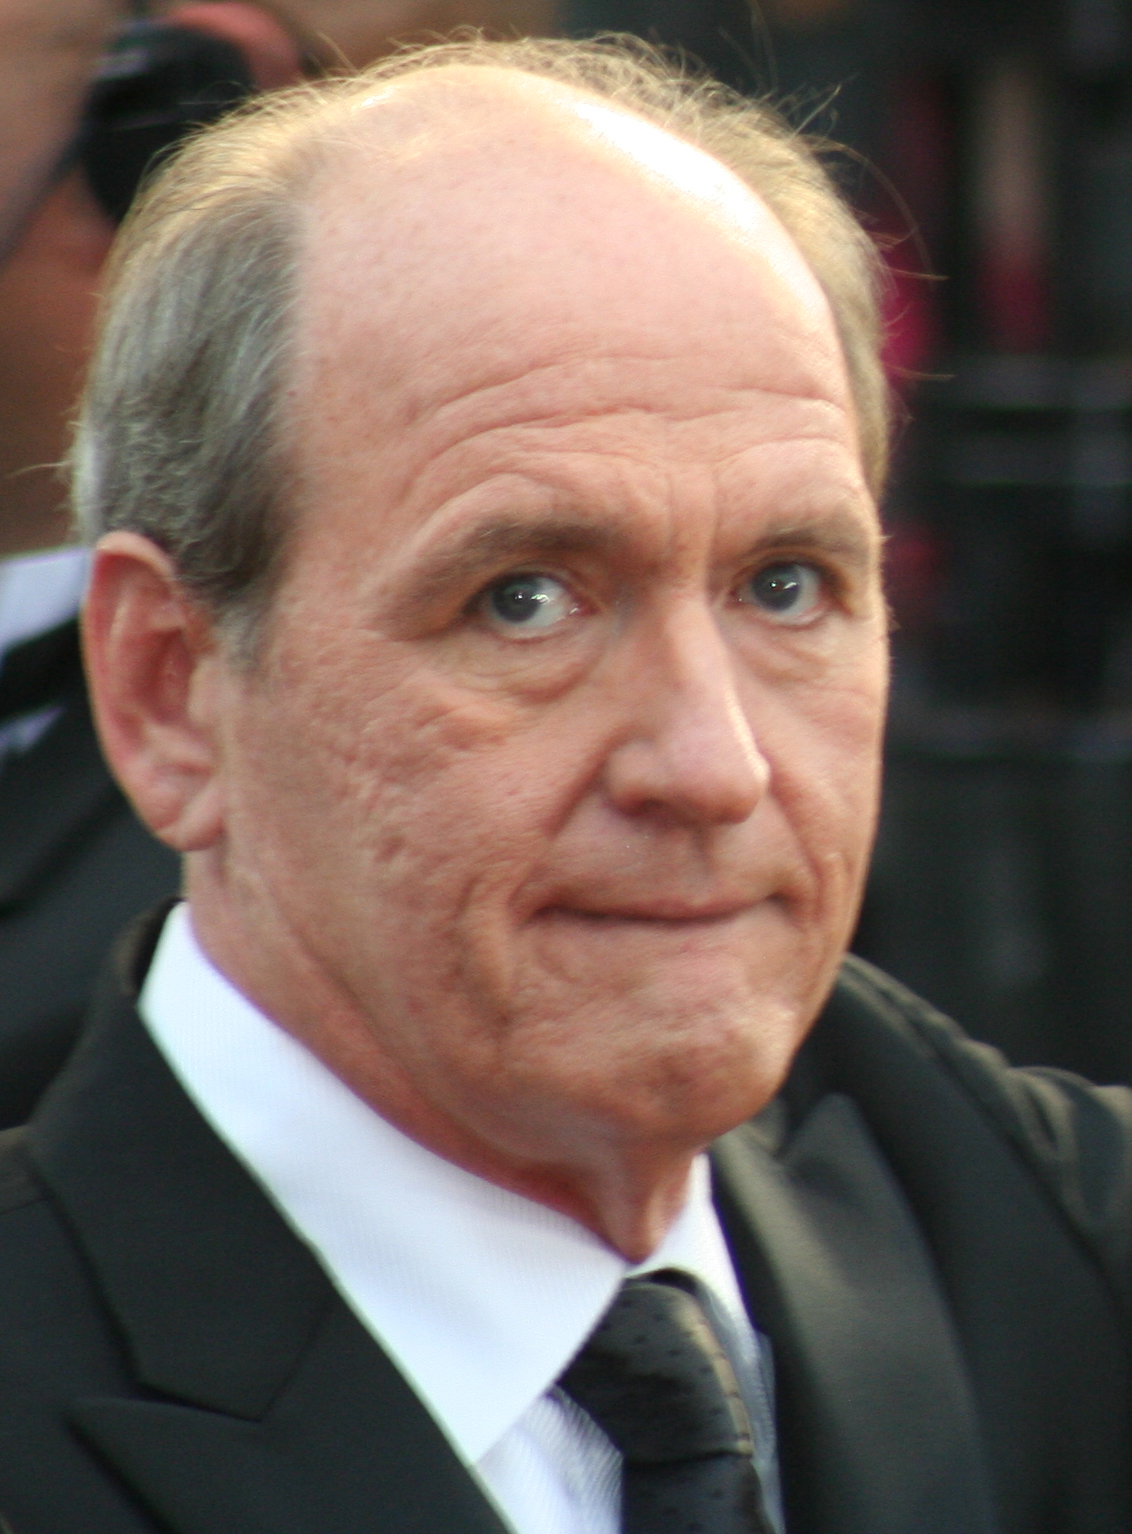 richard jenkins - wikipedia